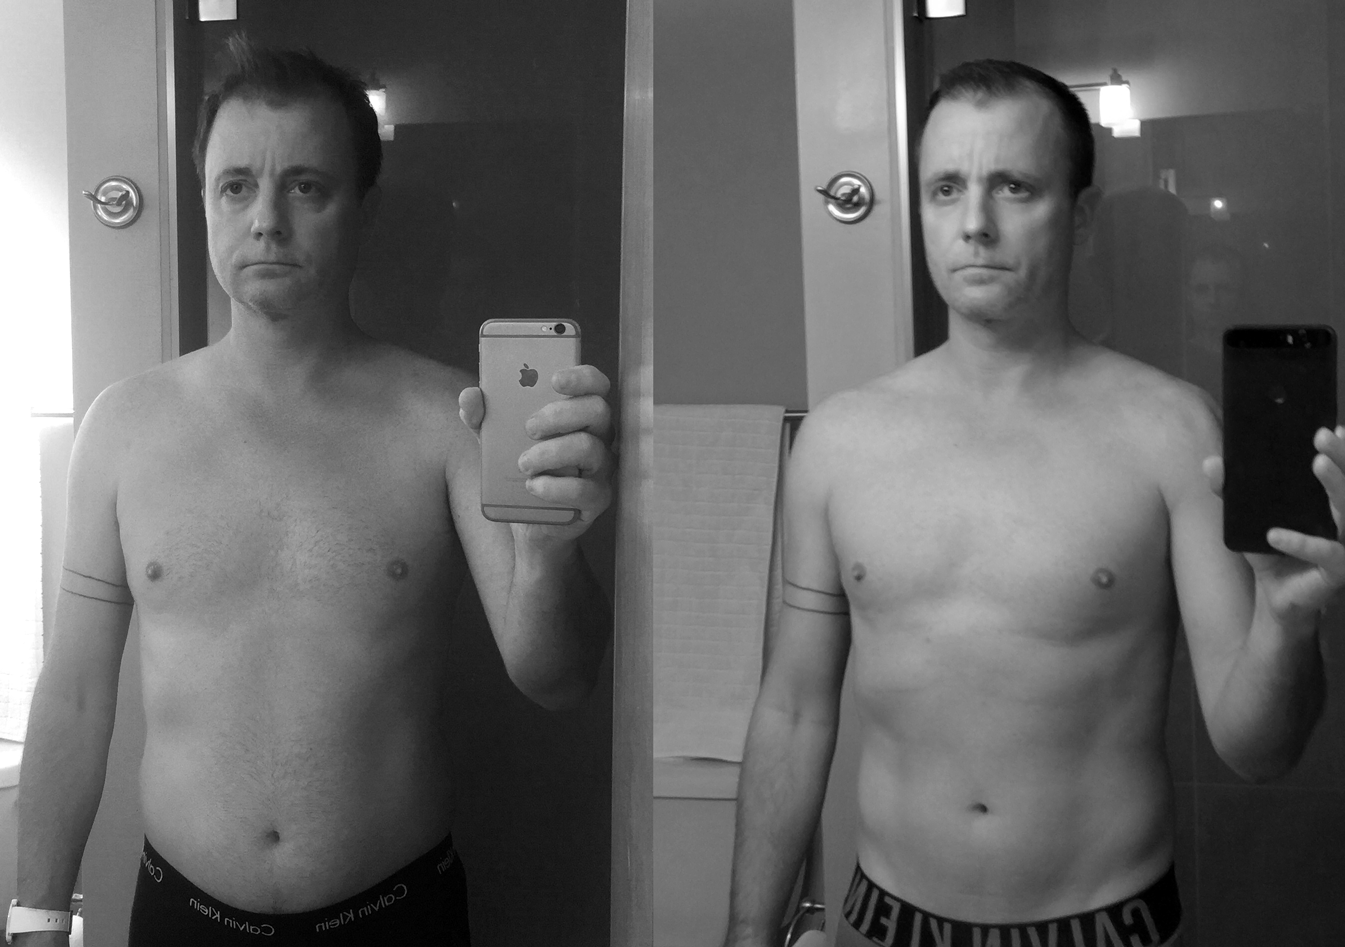 60 Days Of Yoga A Before And After Look At How I So By Geoff Teehan Habits Of Introspection Medium